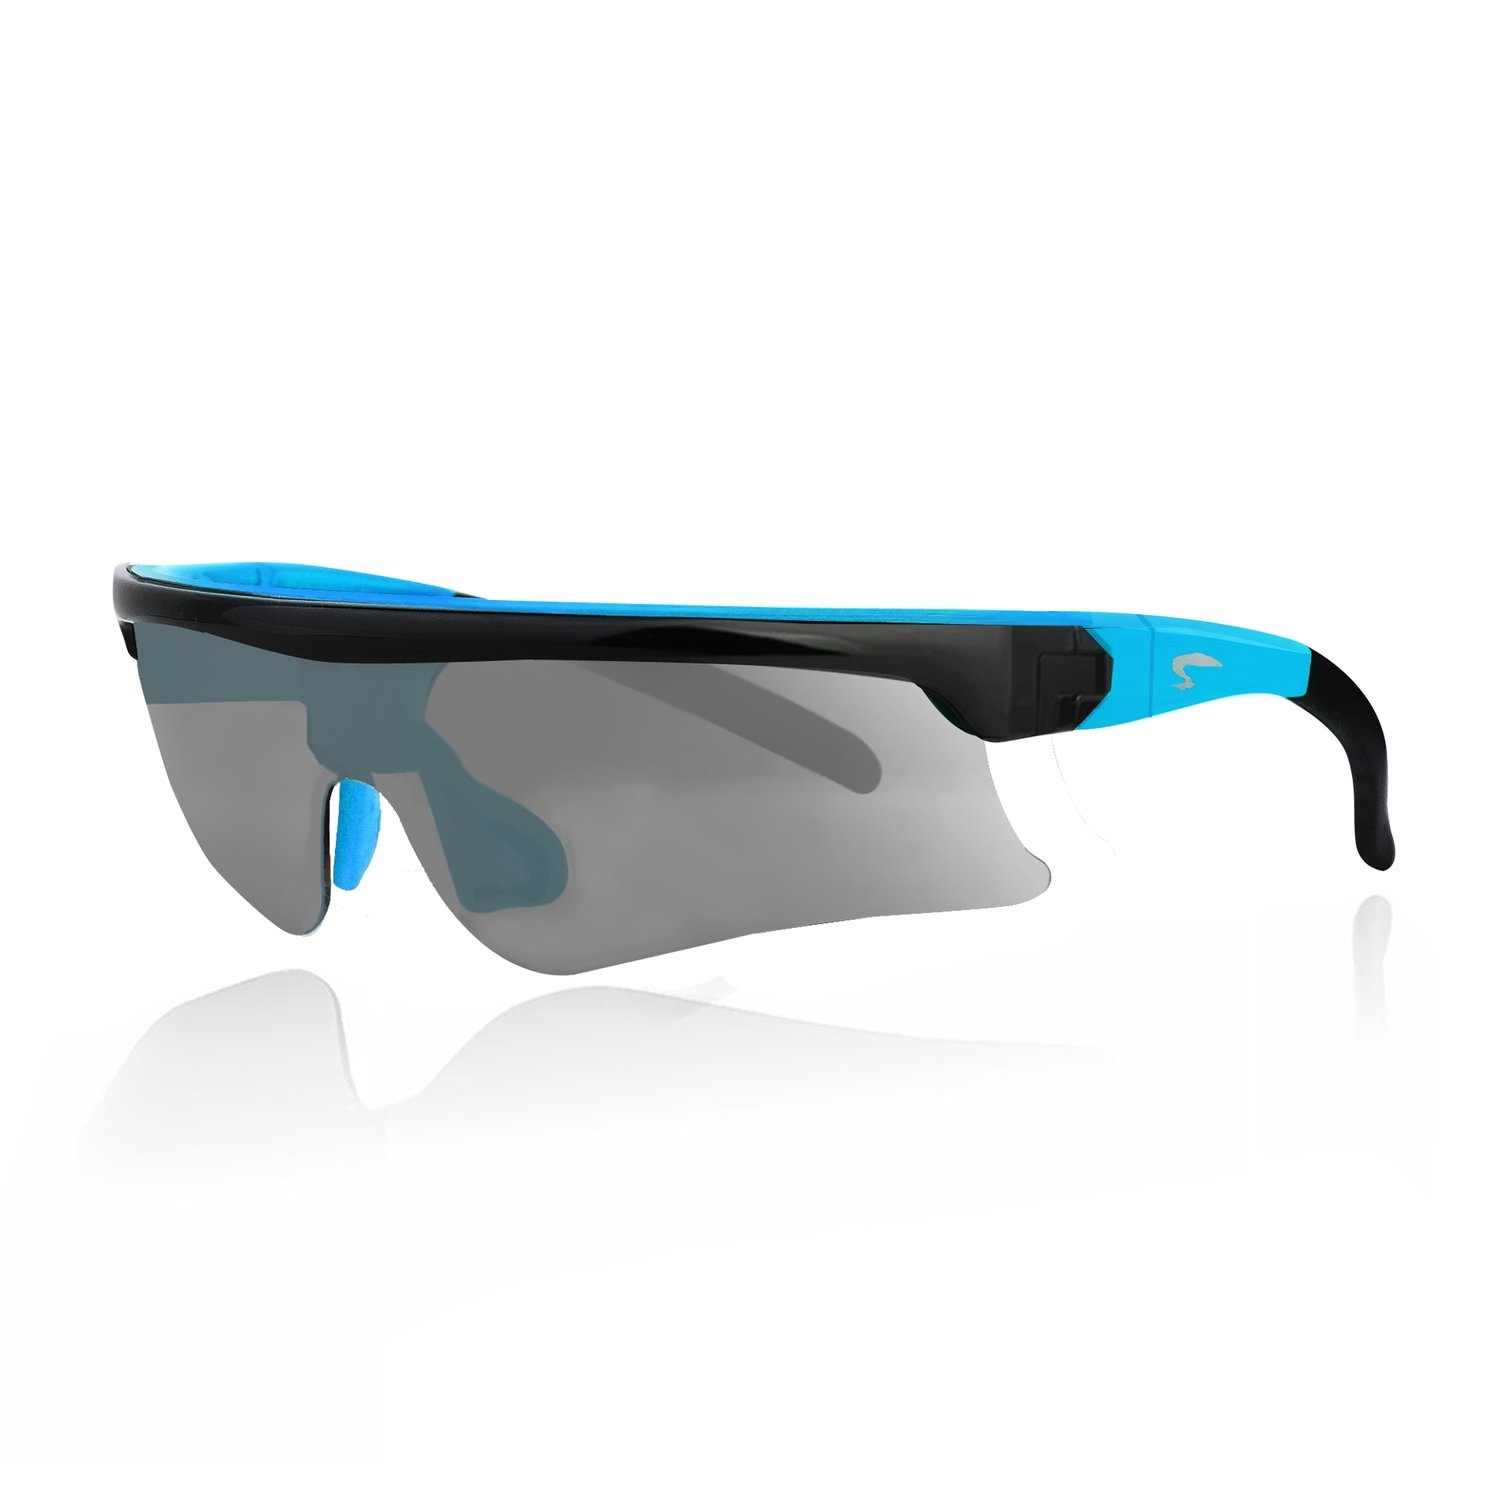 TREND BLUE Polarized